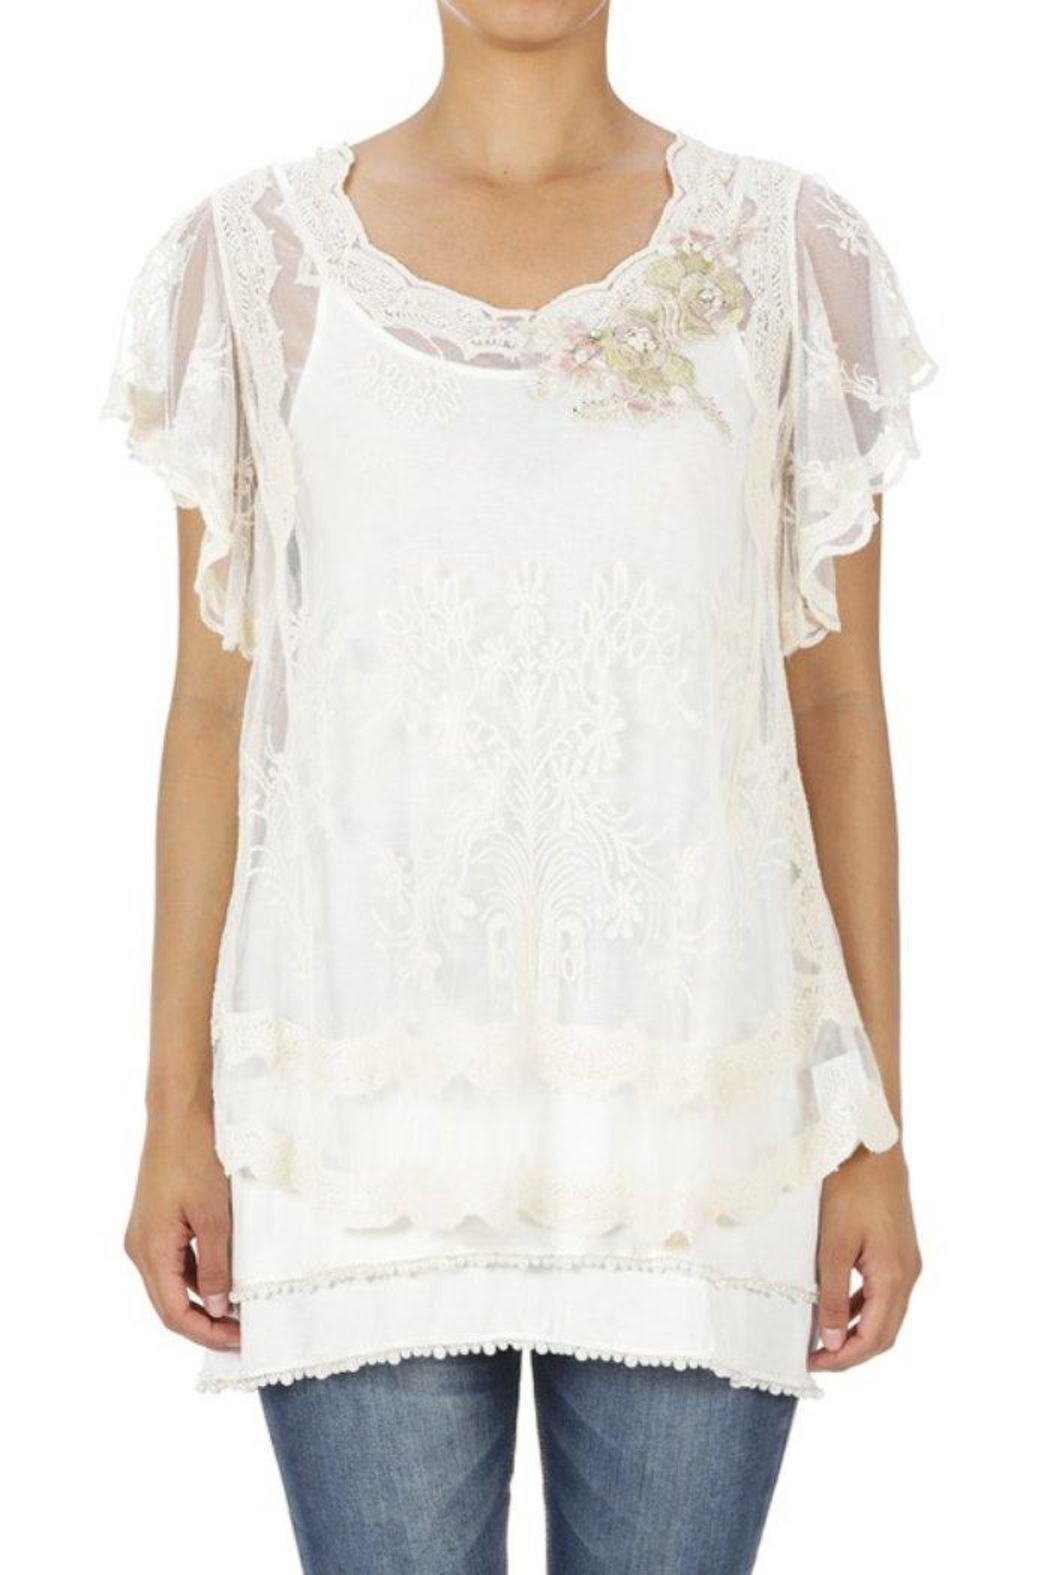 Origami Embroidered Lace Blouse - Main Image